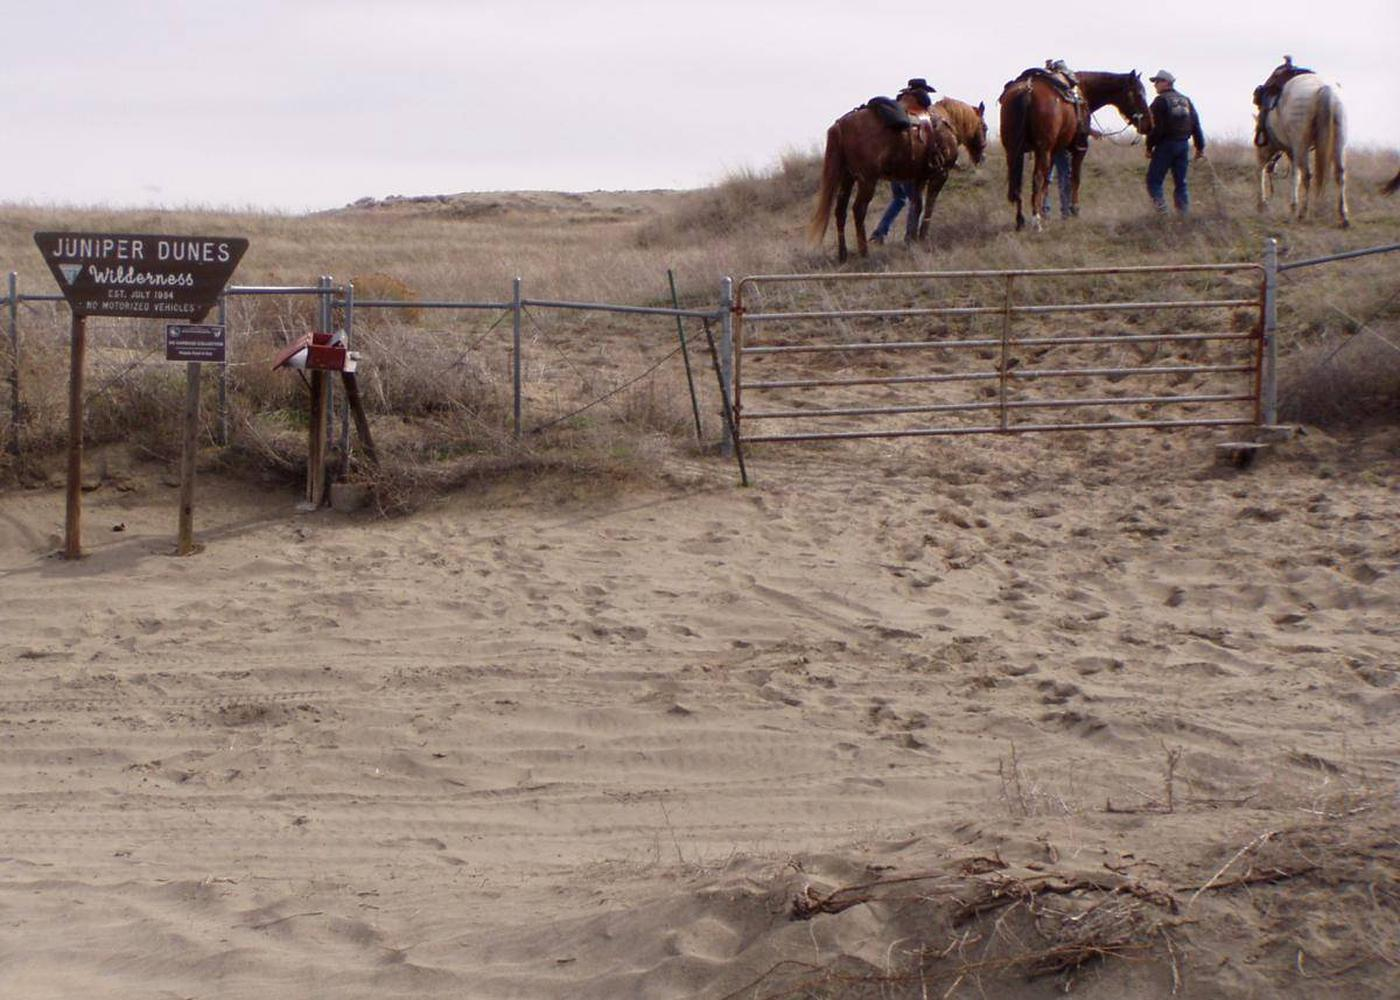 Equestrians assemble at the Wilderness Gate before a ride into the Juniper Dunes Wilderness